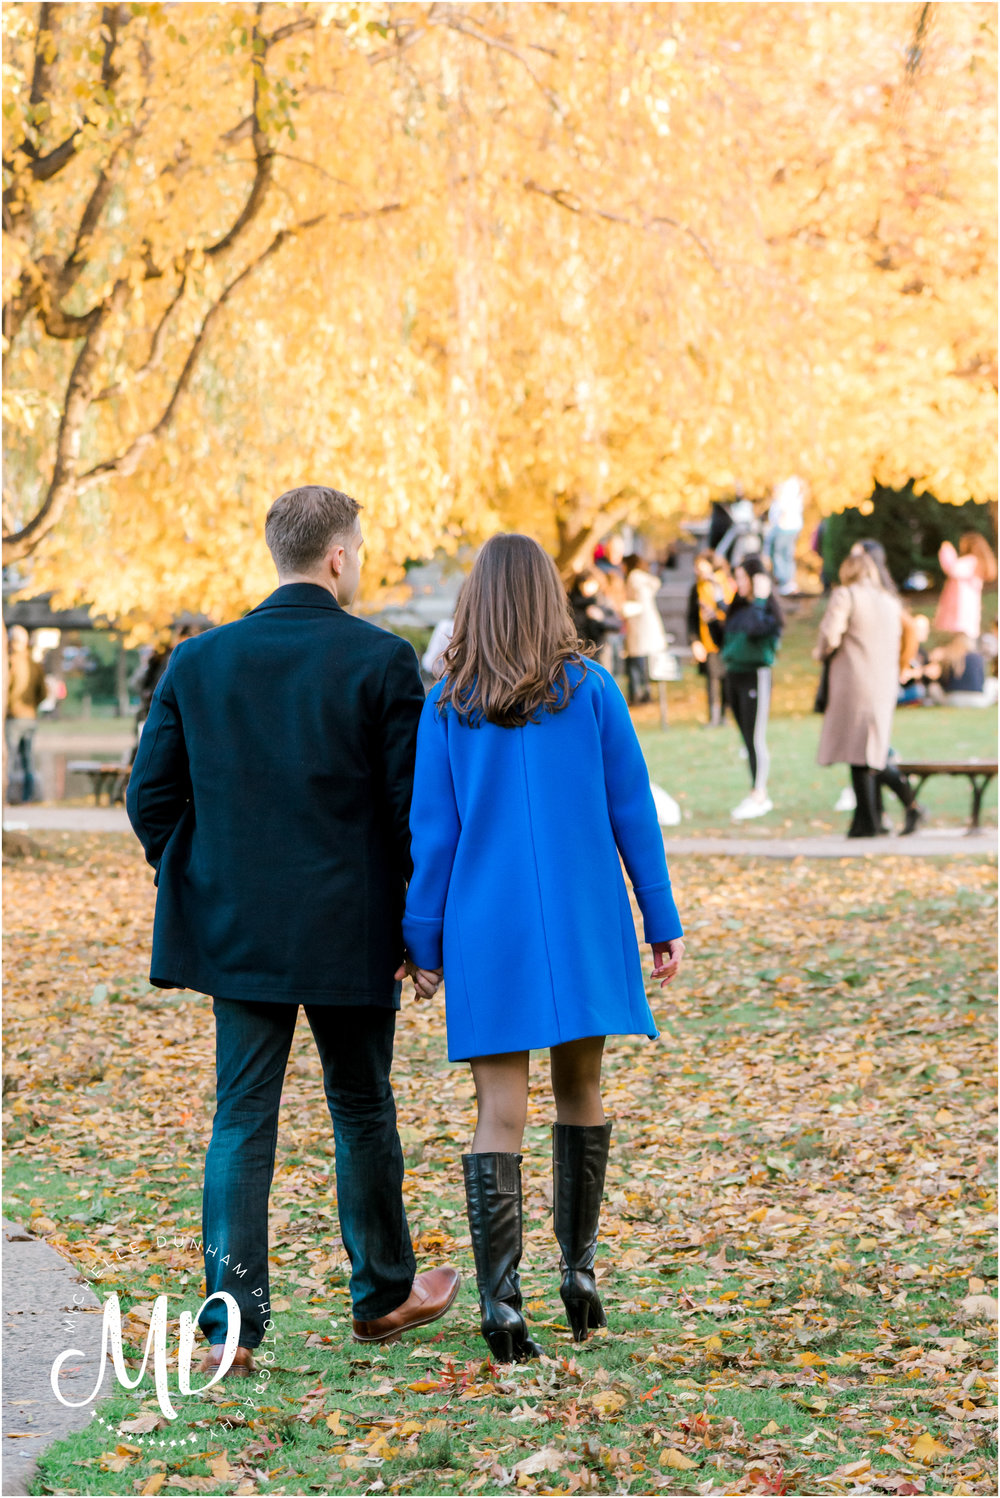 Michelle-Dunham-Photography-Engagement-Public-Garden-Boston-17.jpg